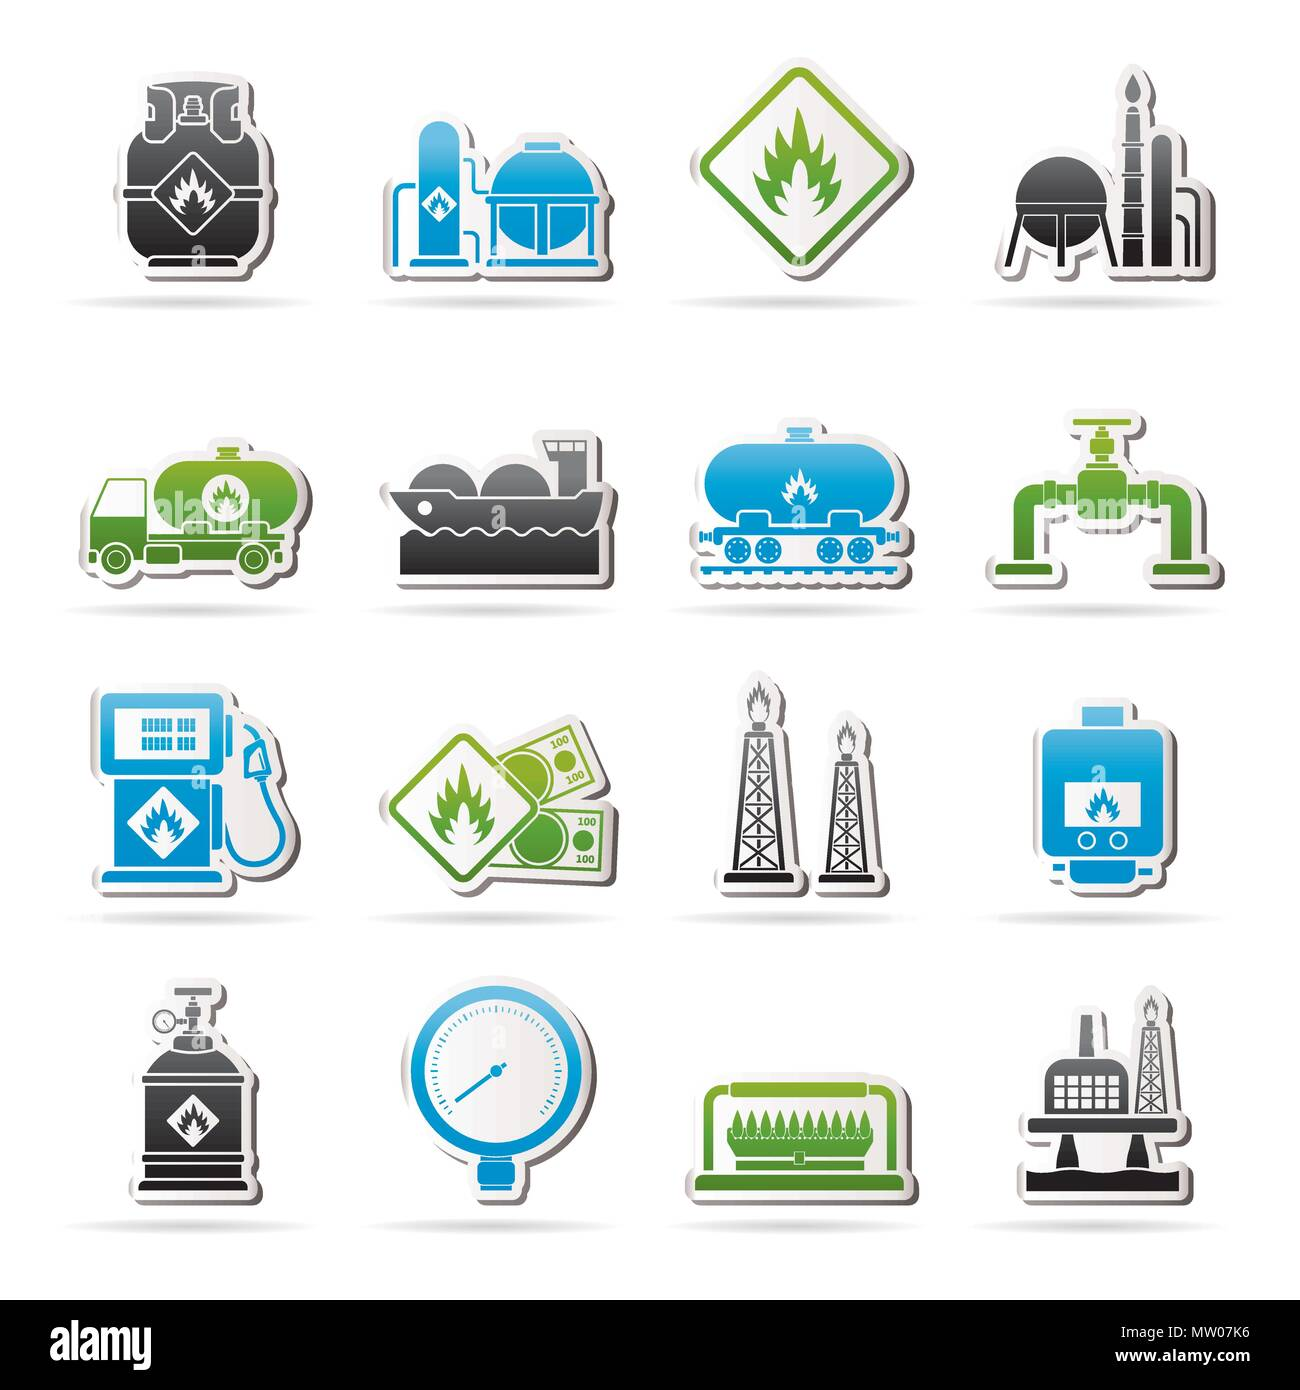 Natural gas fuel and energy industry icons  - vector icon set - Stock Vector